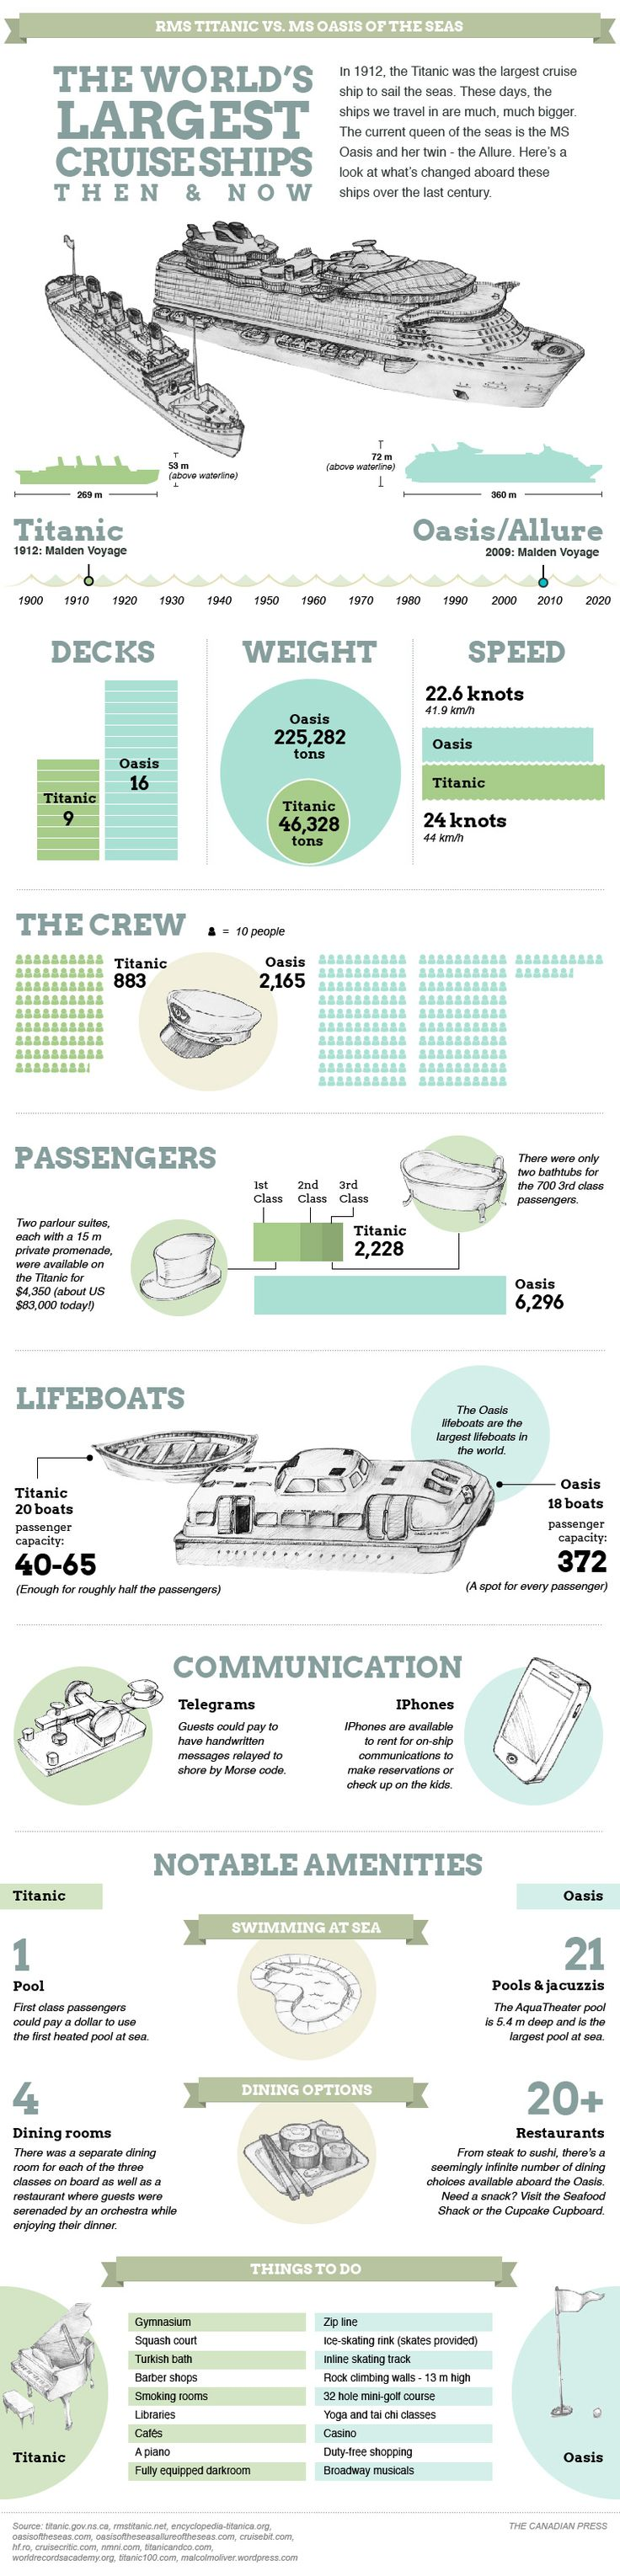 RMS Titanic and MS Oasis of the Seas: a comparison [Infographic]